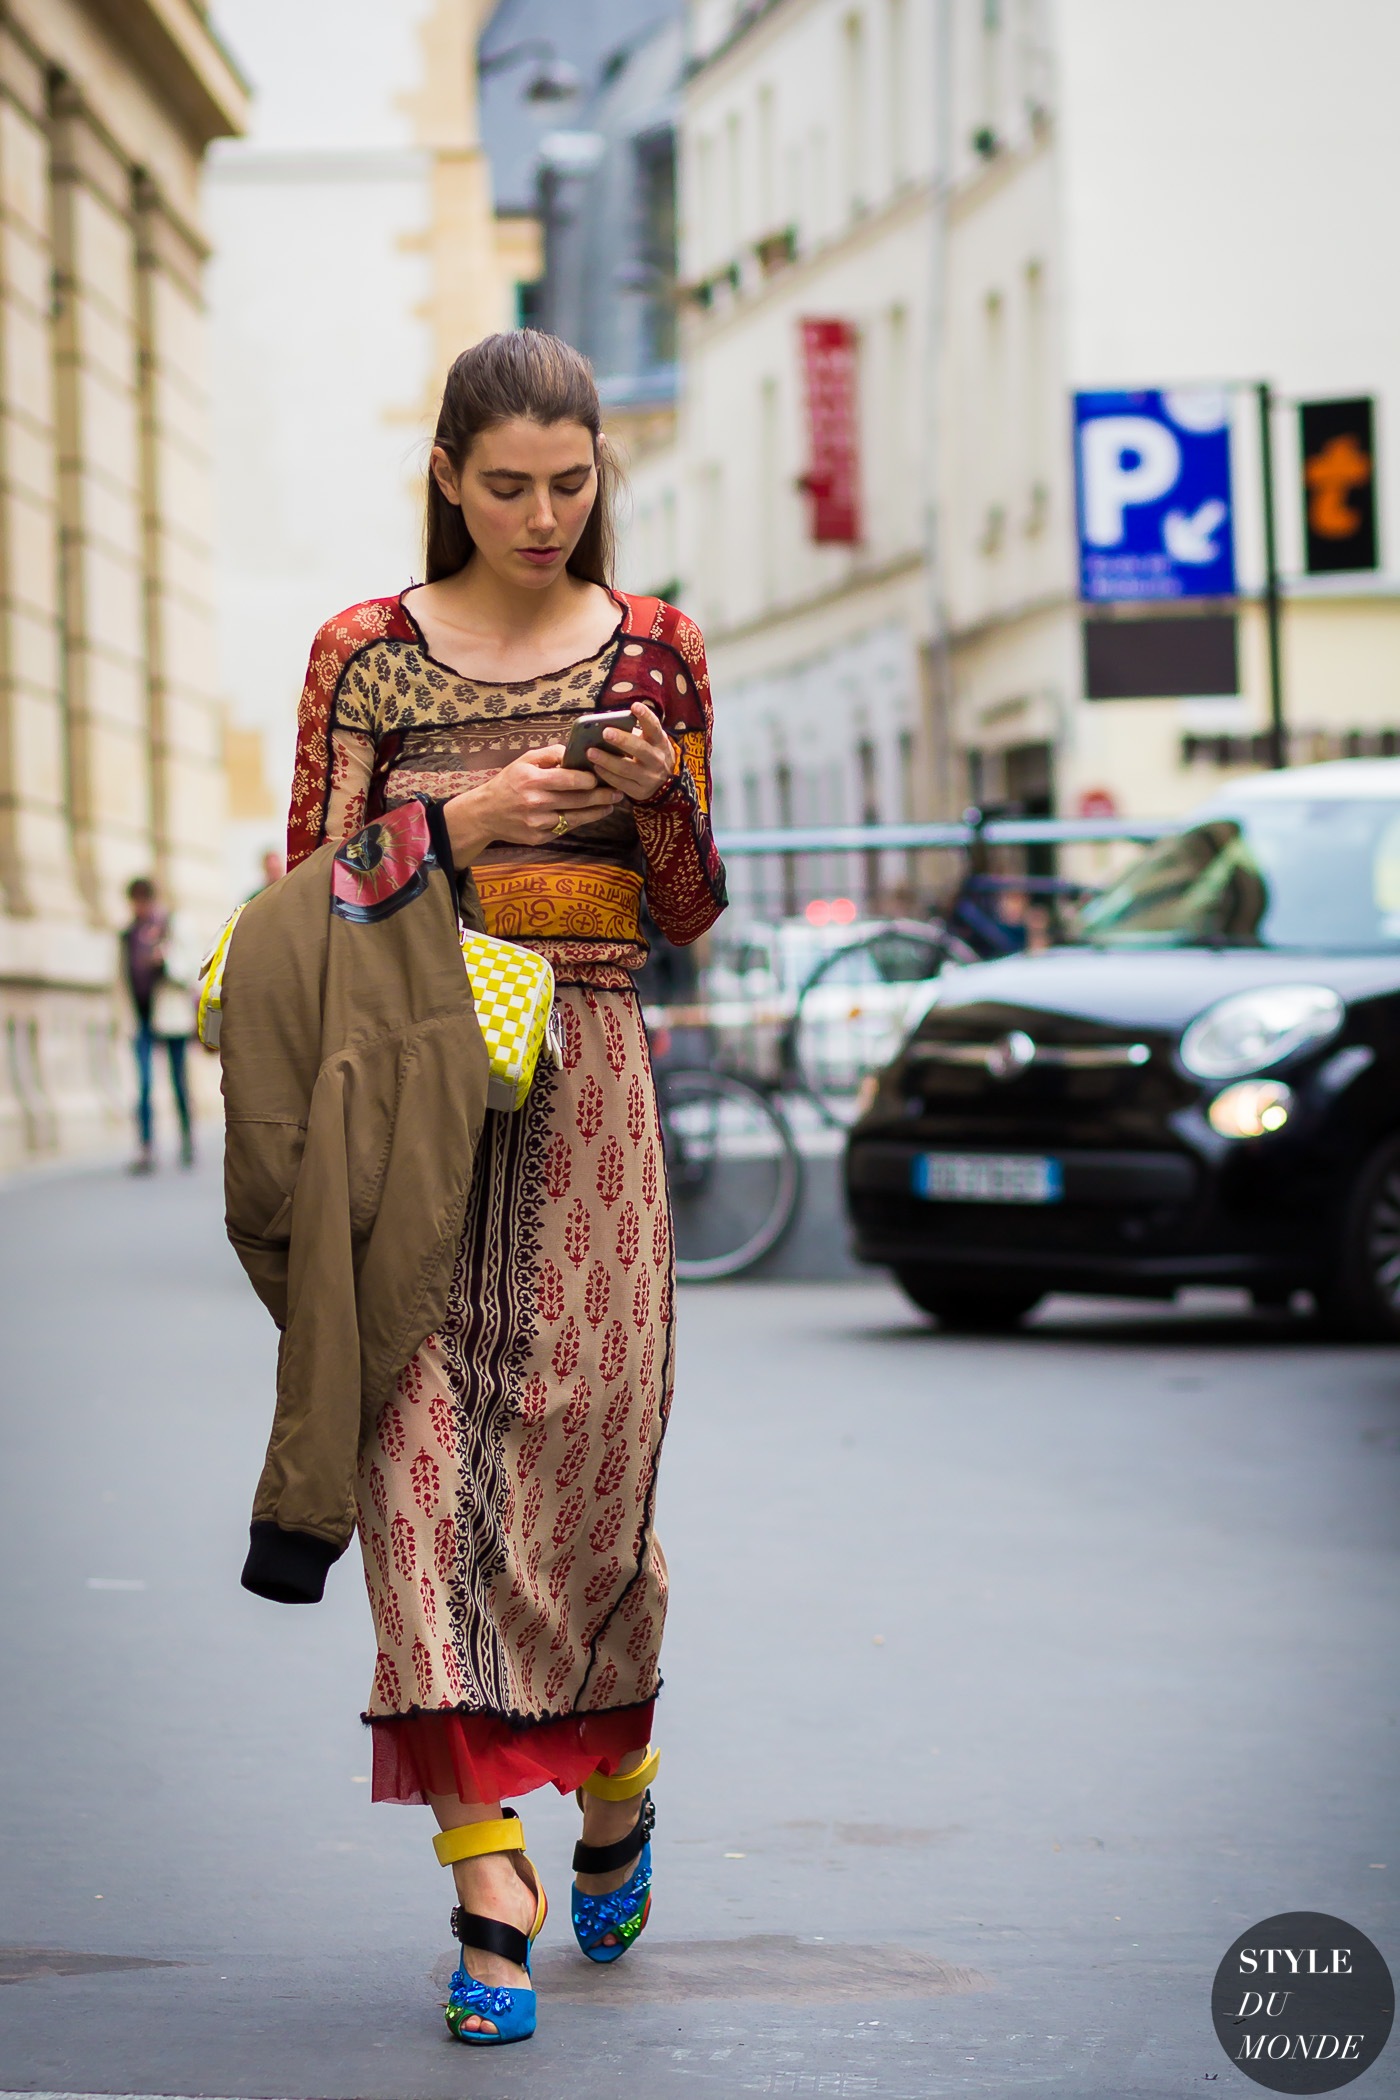 Ursina Gysi Street Style Street Fashion Streetsnaps by STYLEDUMONDE Street Style Fashion Photography